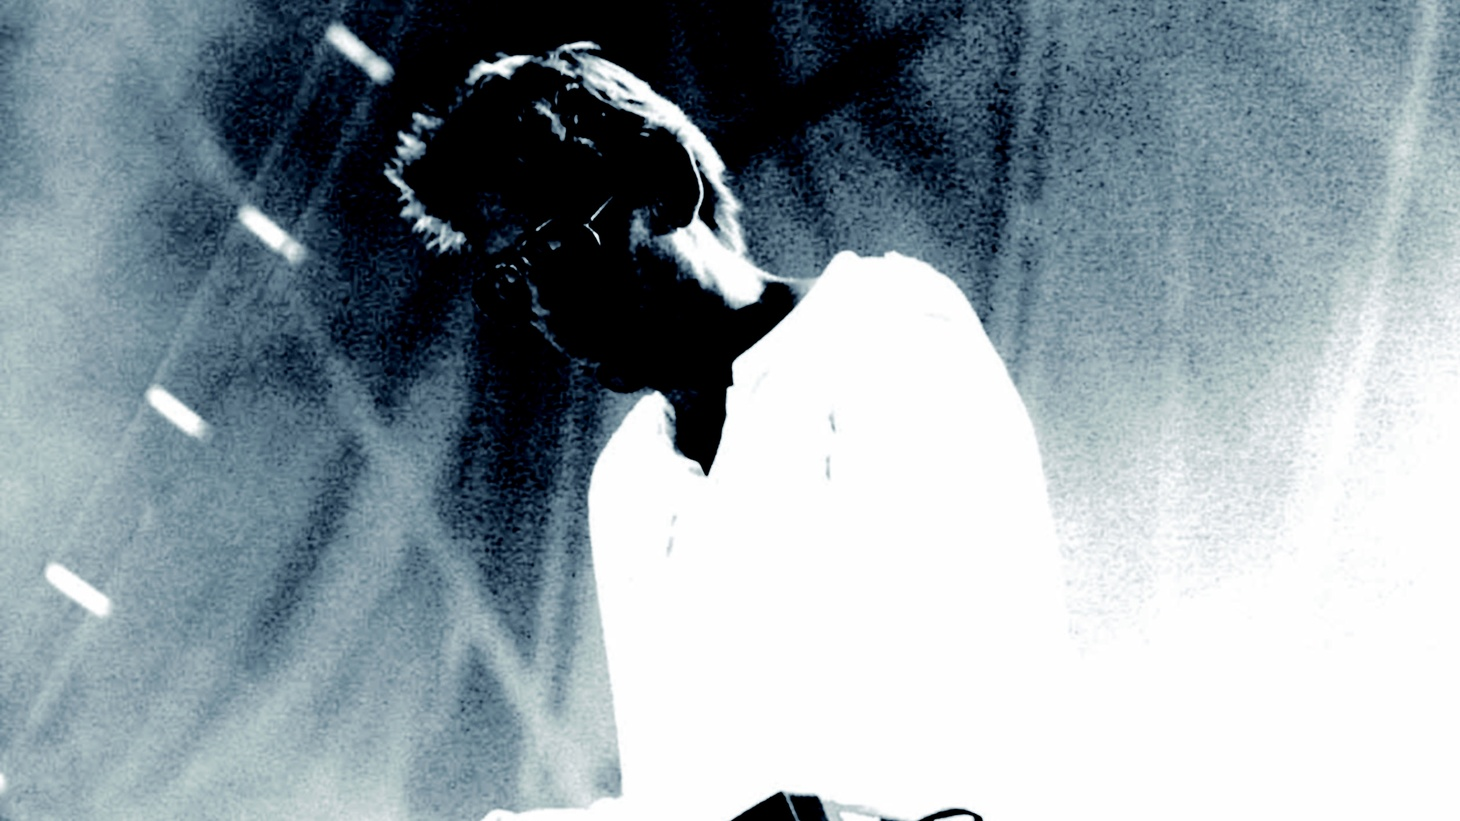 Andy Cato has had many incarnations over the past couple decades, most notably as half of the superstar duo Groove Armada.